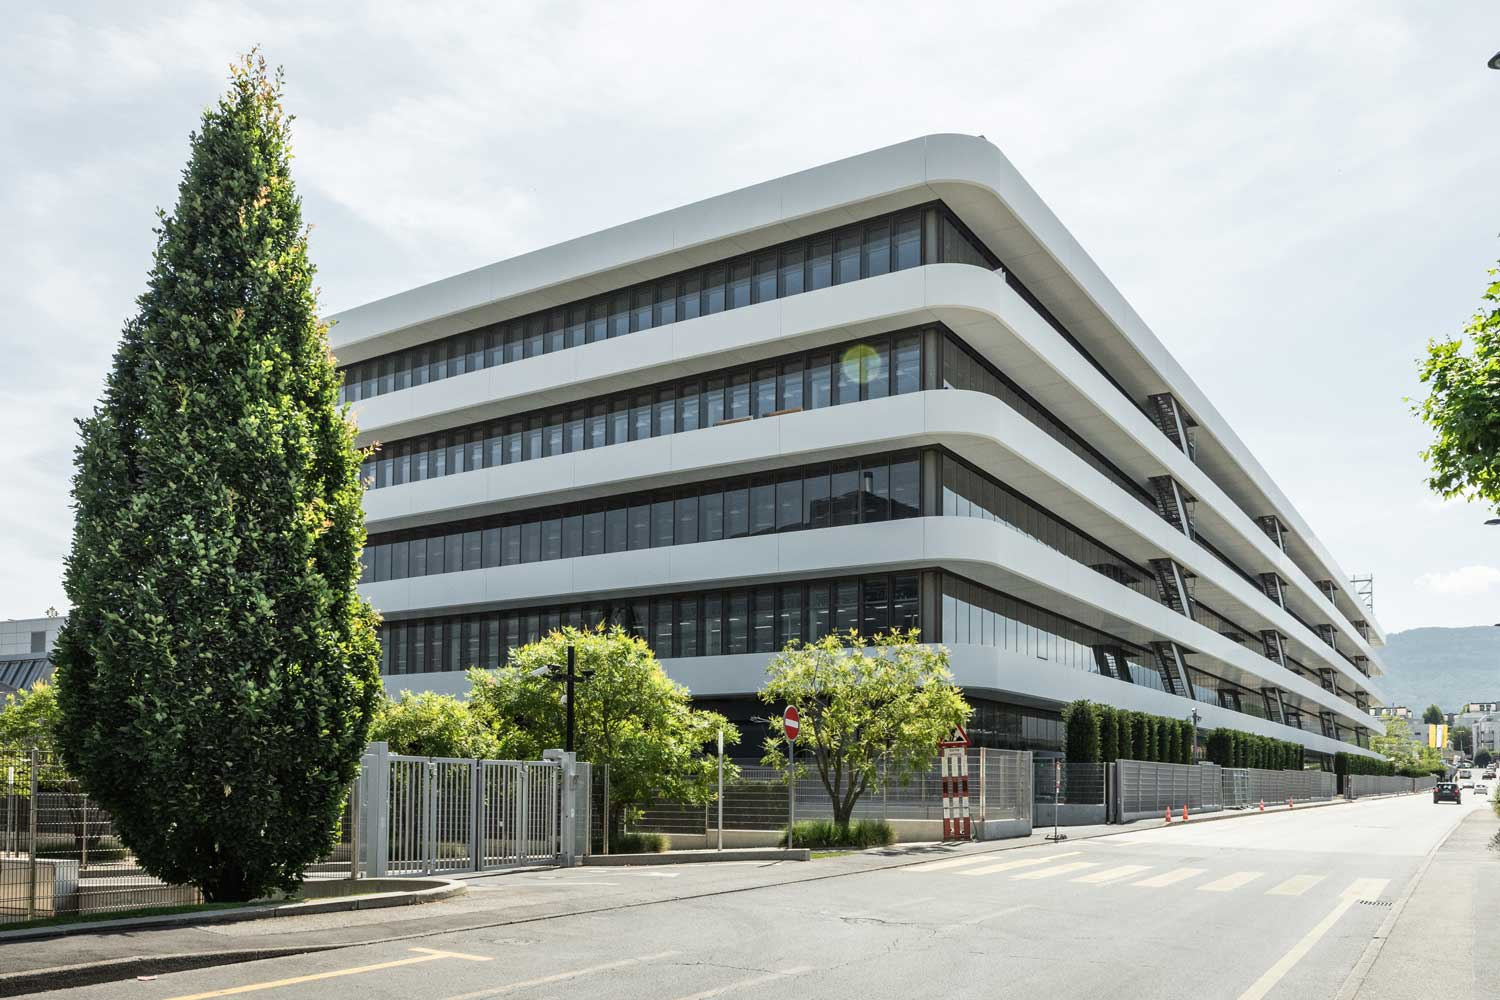 In June 2020, Patek Philippe announced the completion of its new production facility in Geneva